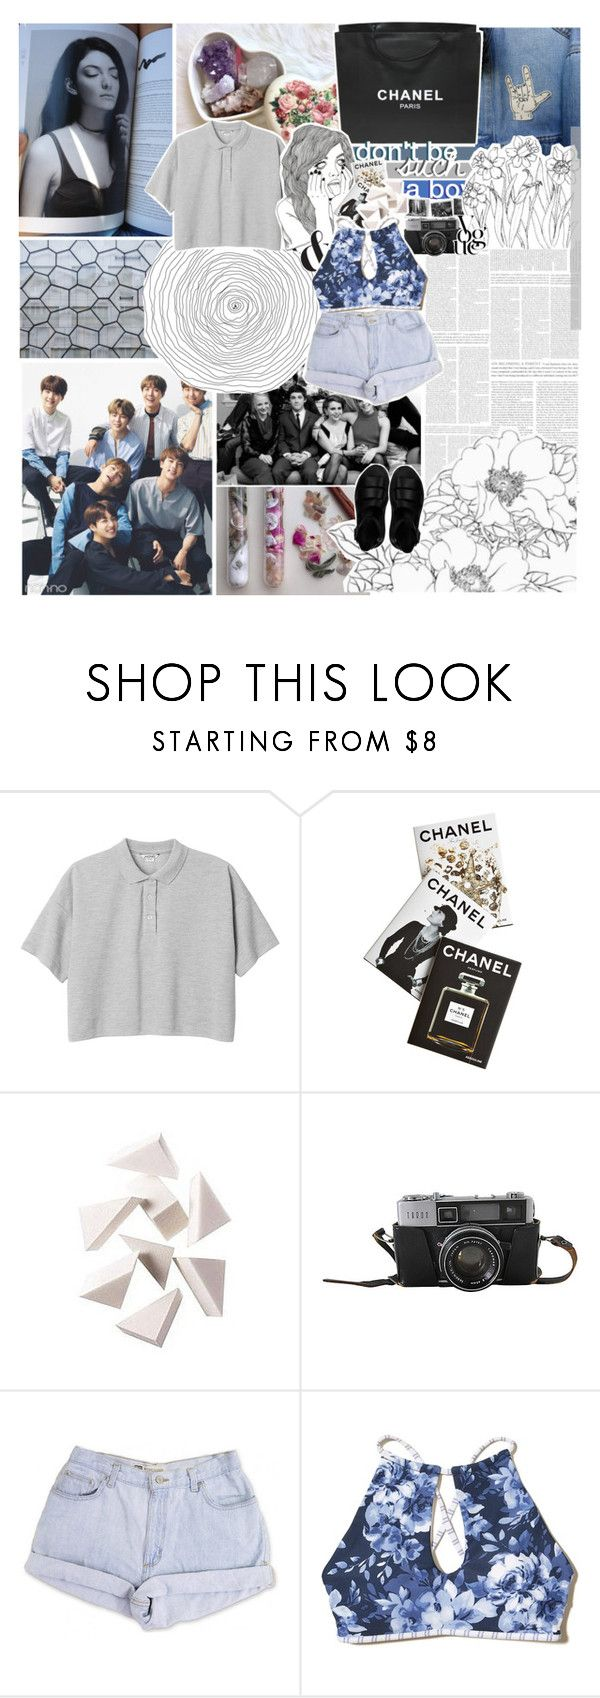 """""""THEN WE MAKEOUT, YOU FREAK OUT"""" by unkingly ❤ liked on Polyvore featuring Monki, Chanel, Assouline Publishing, Bobbi Brown Cosmetics, Hollister Co. and Dr. Martens"""